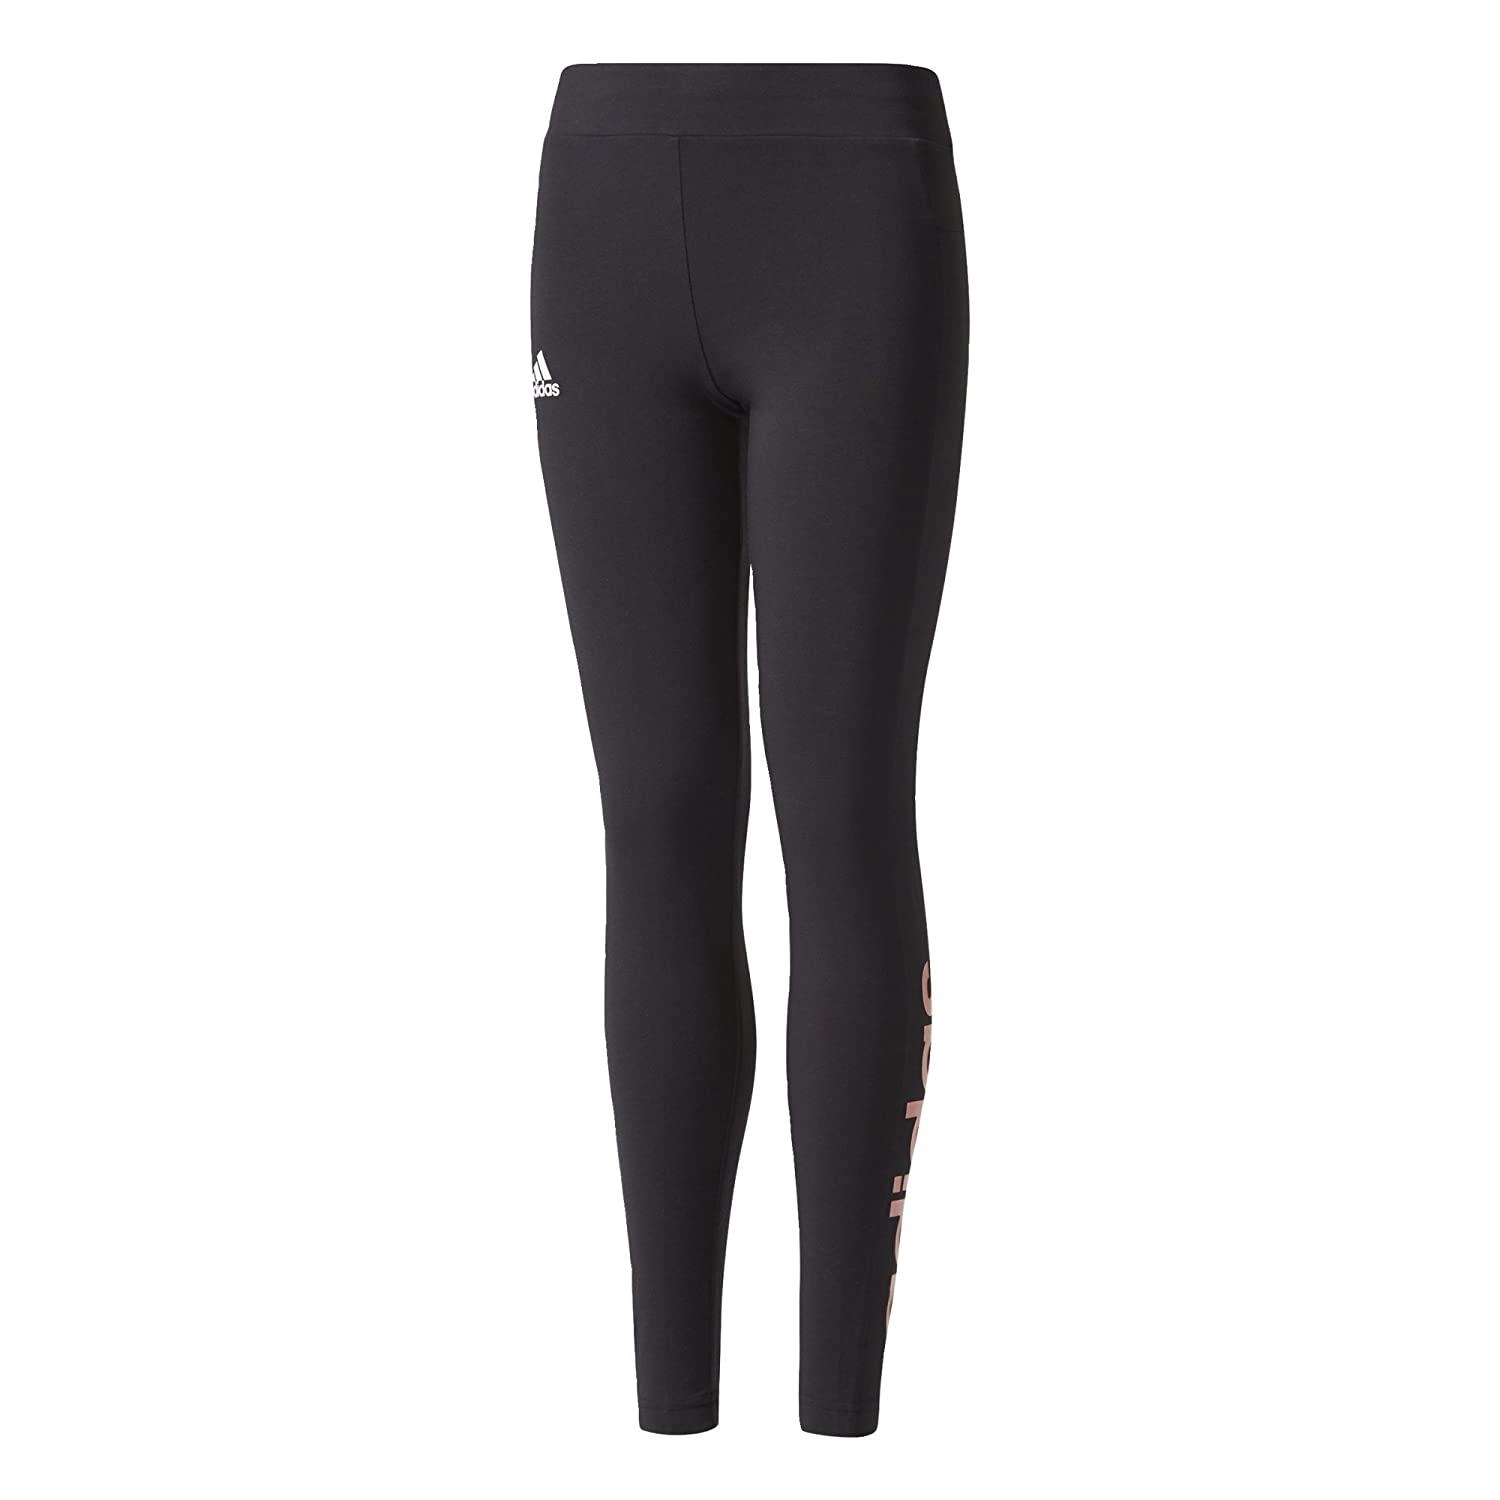 adidas Girls' Yg Linear Tights